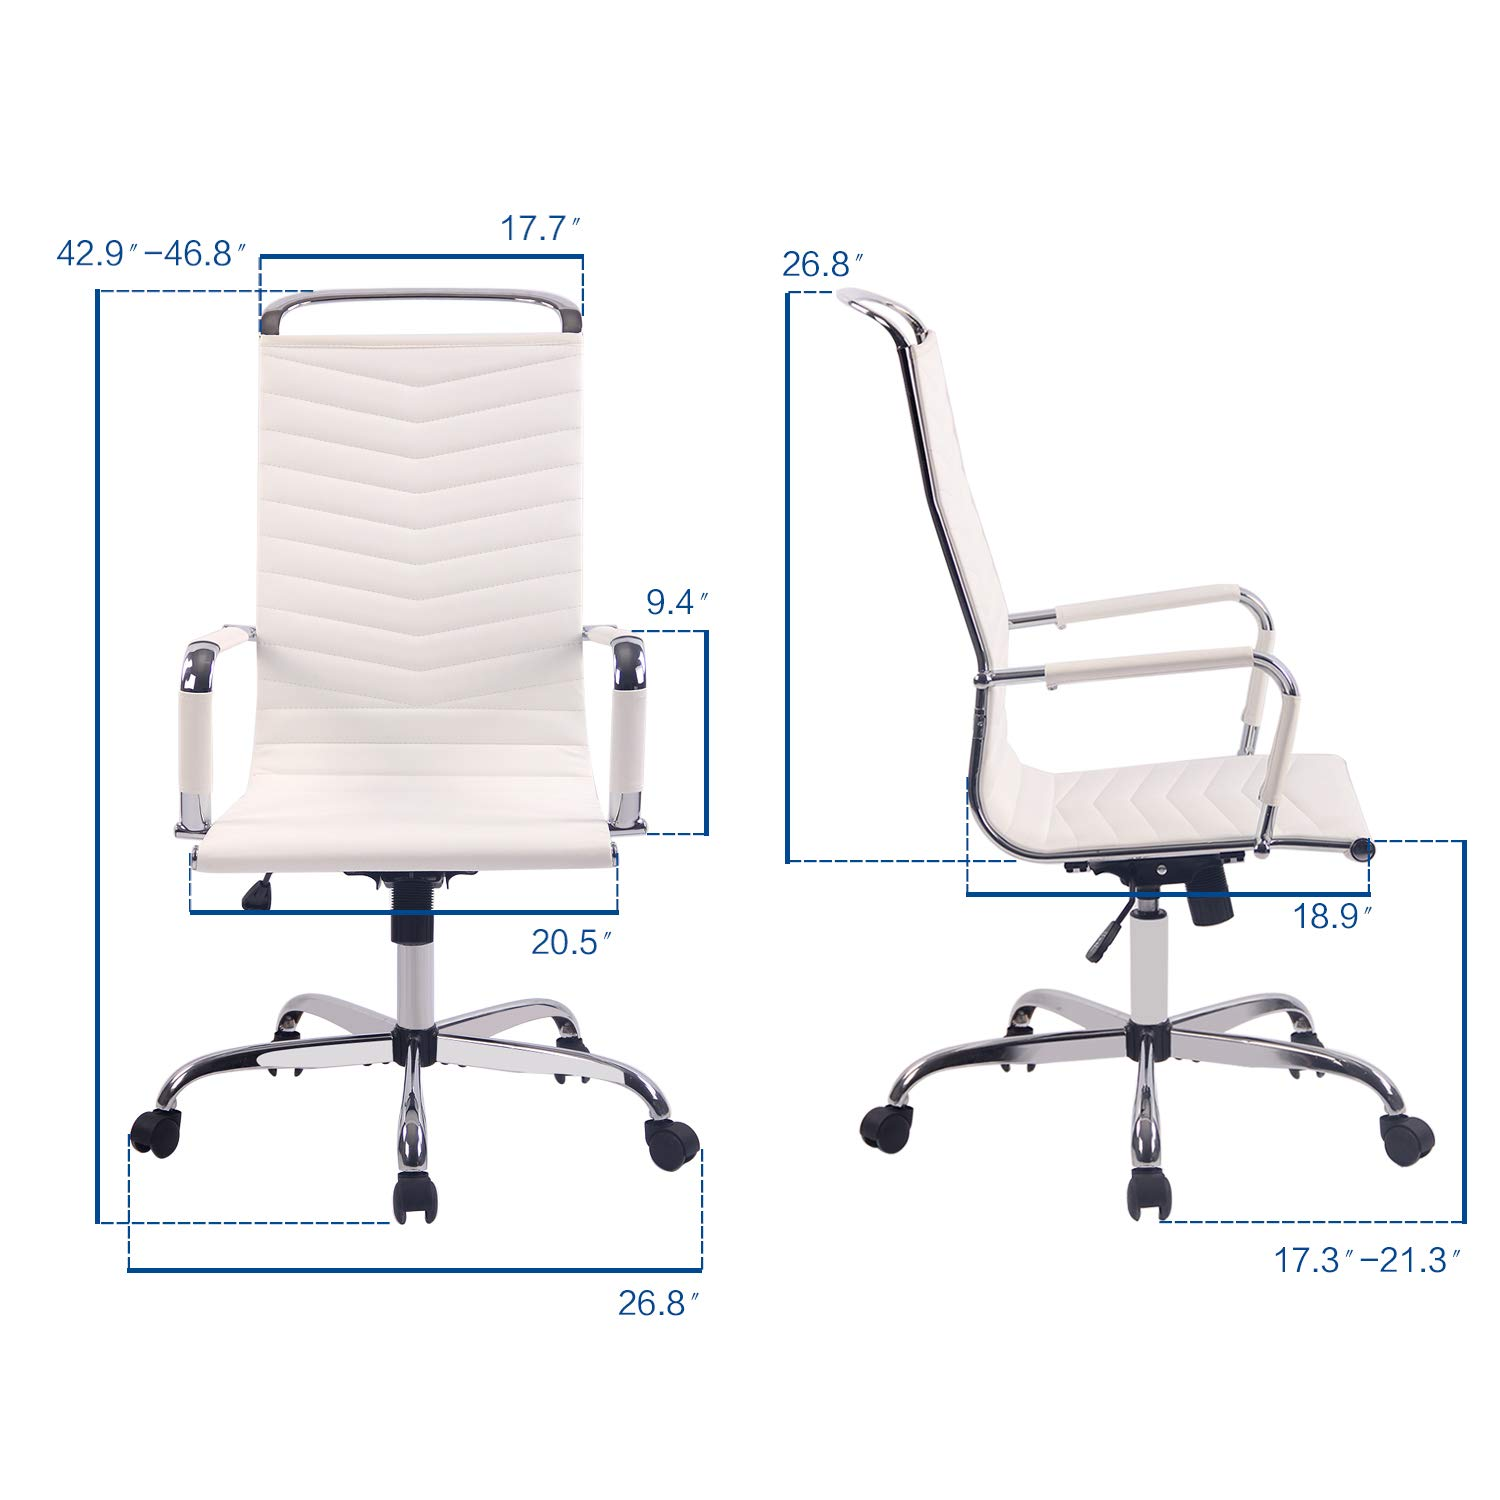 Elecwish, 2PCS Adjustable Office Executive Chair, High Back Tall Ribbed, Pu Leather, Wheels Arm Rest Computer, Chrome Base, Home Furniture, Conference ...